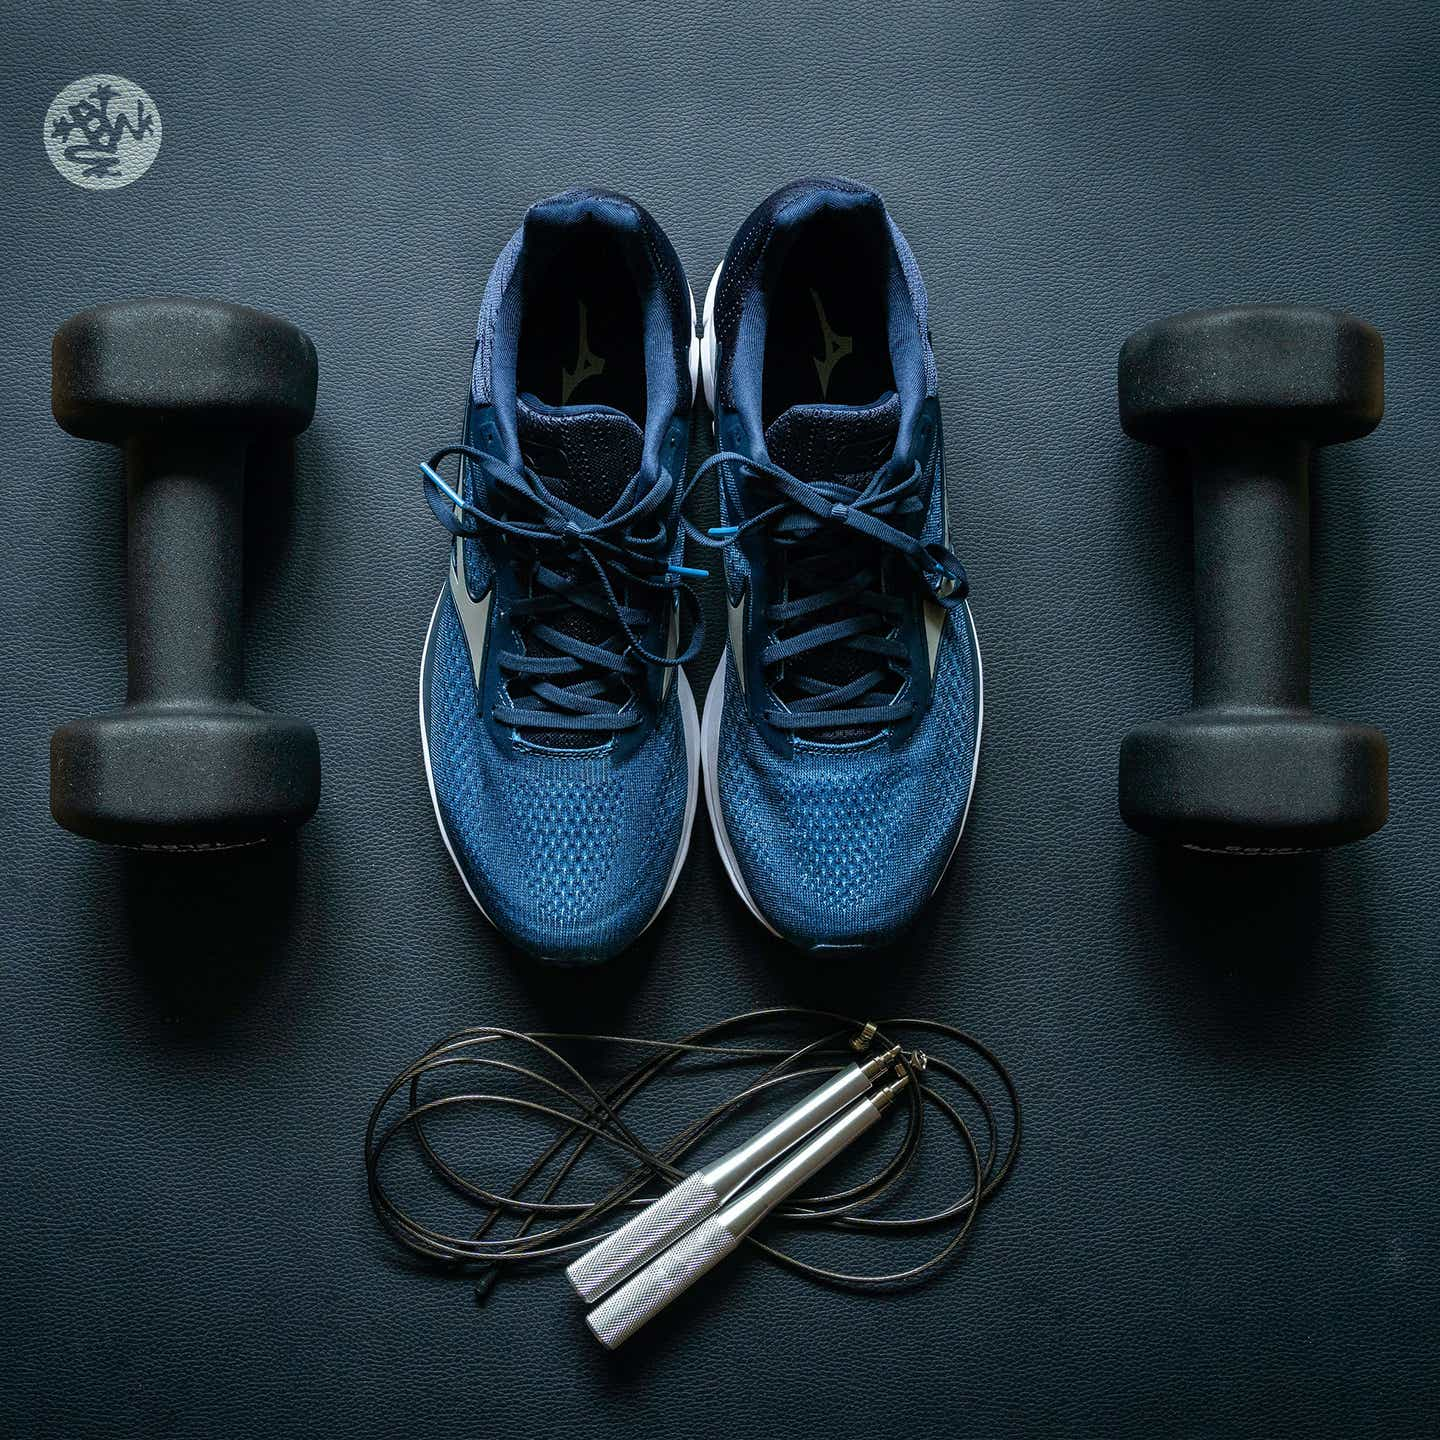 A pair of blue gym shoes, two black free weights, and a jump rope lay out over a navy yoga mat.